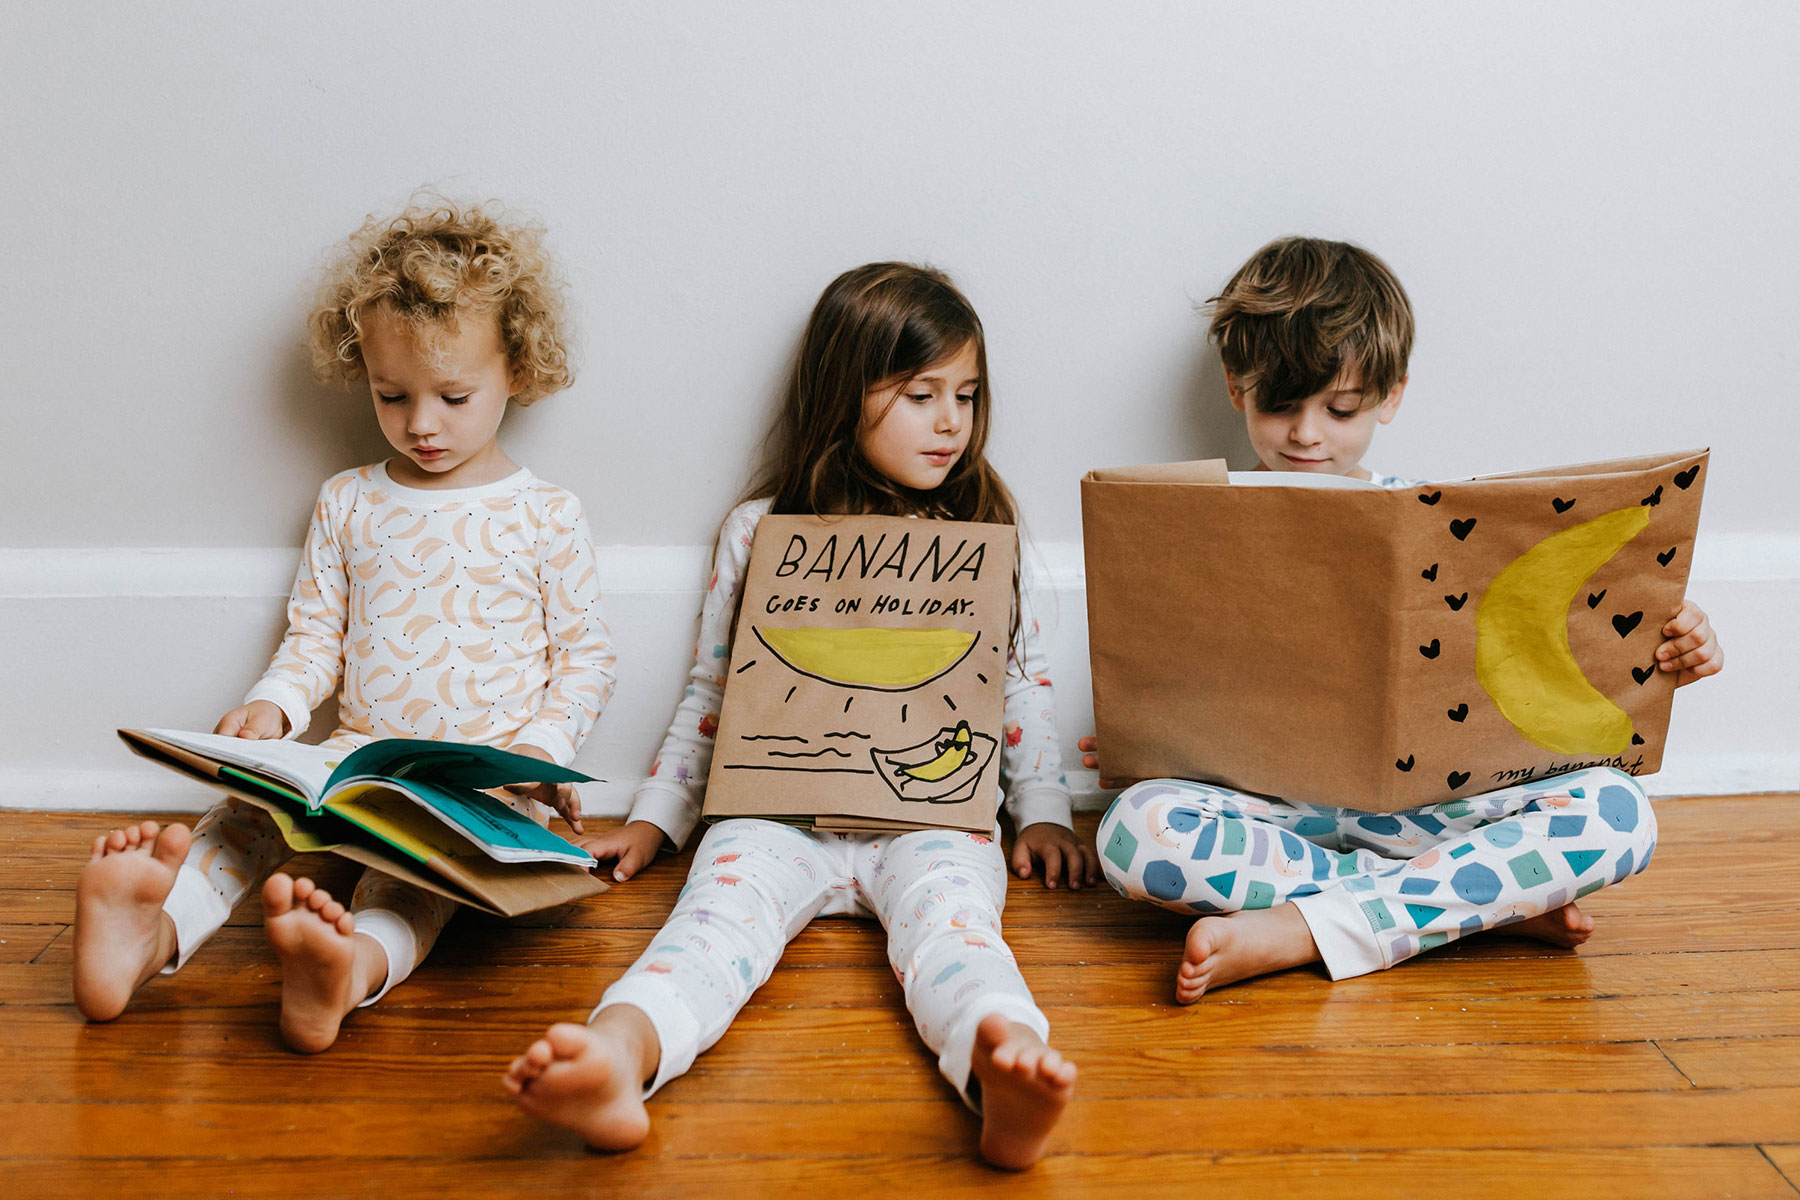 Could Homeschooling Be Our Greatest Opportunity Right Now?